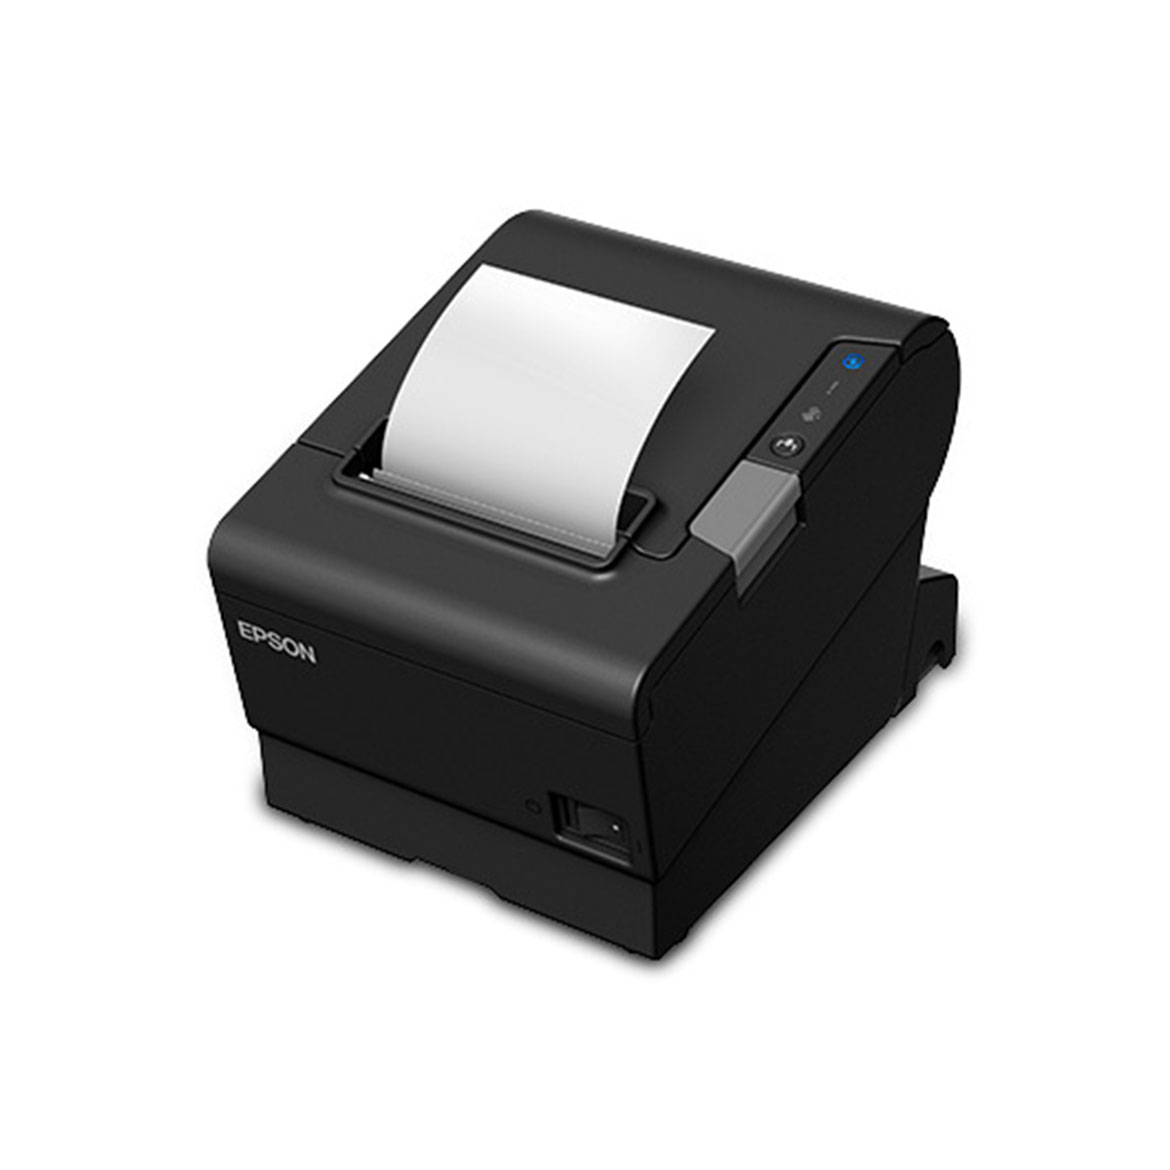 Black color Epson TM-88VI Thermal receipt printer top image